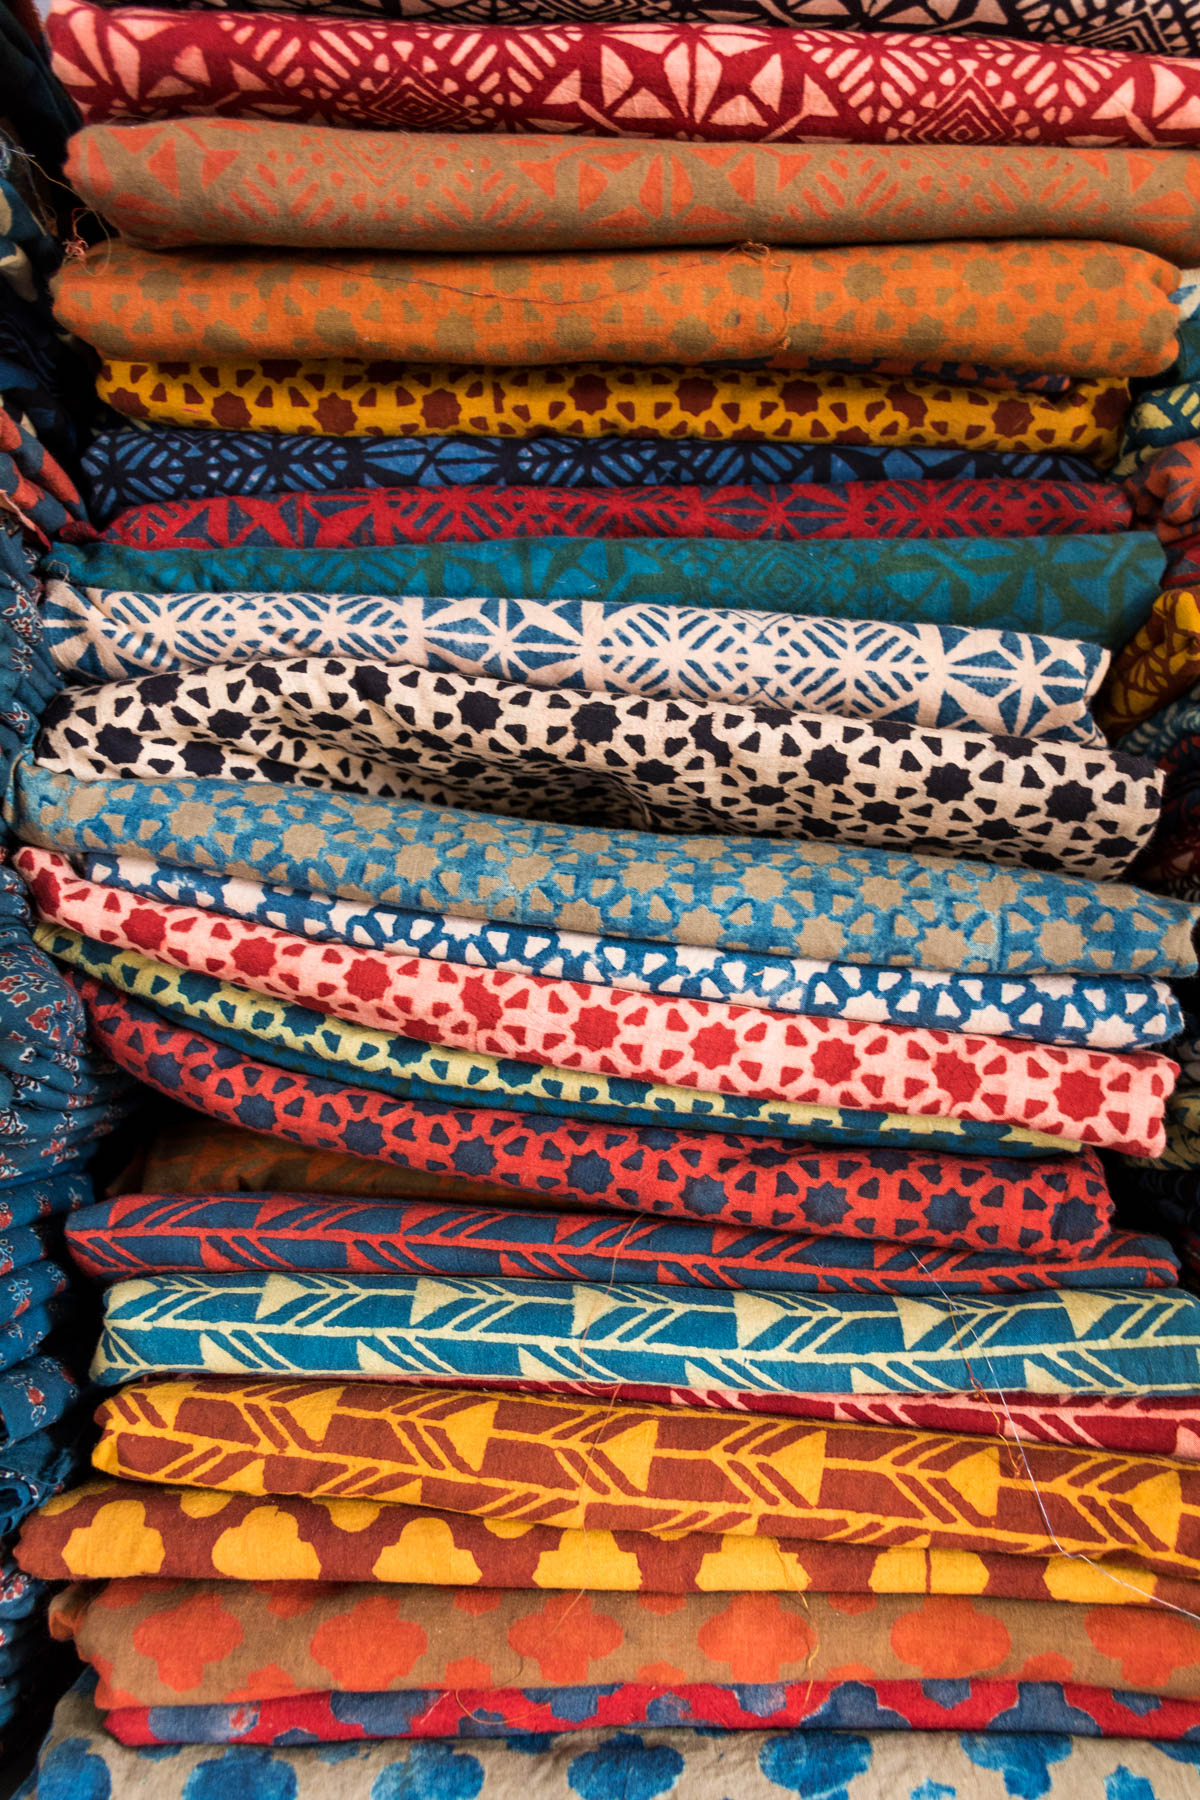 A colorful stack of Ajrakh fabric block printed by hand in Ajrakhpur. Ajrakhpur is a small Kutch village famous for its textiles near Bhuj in Gujarat state, India.